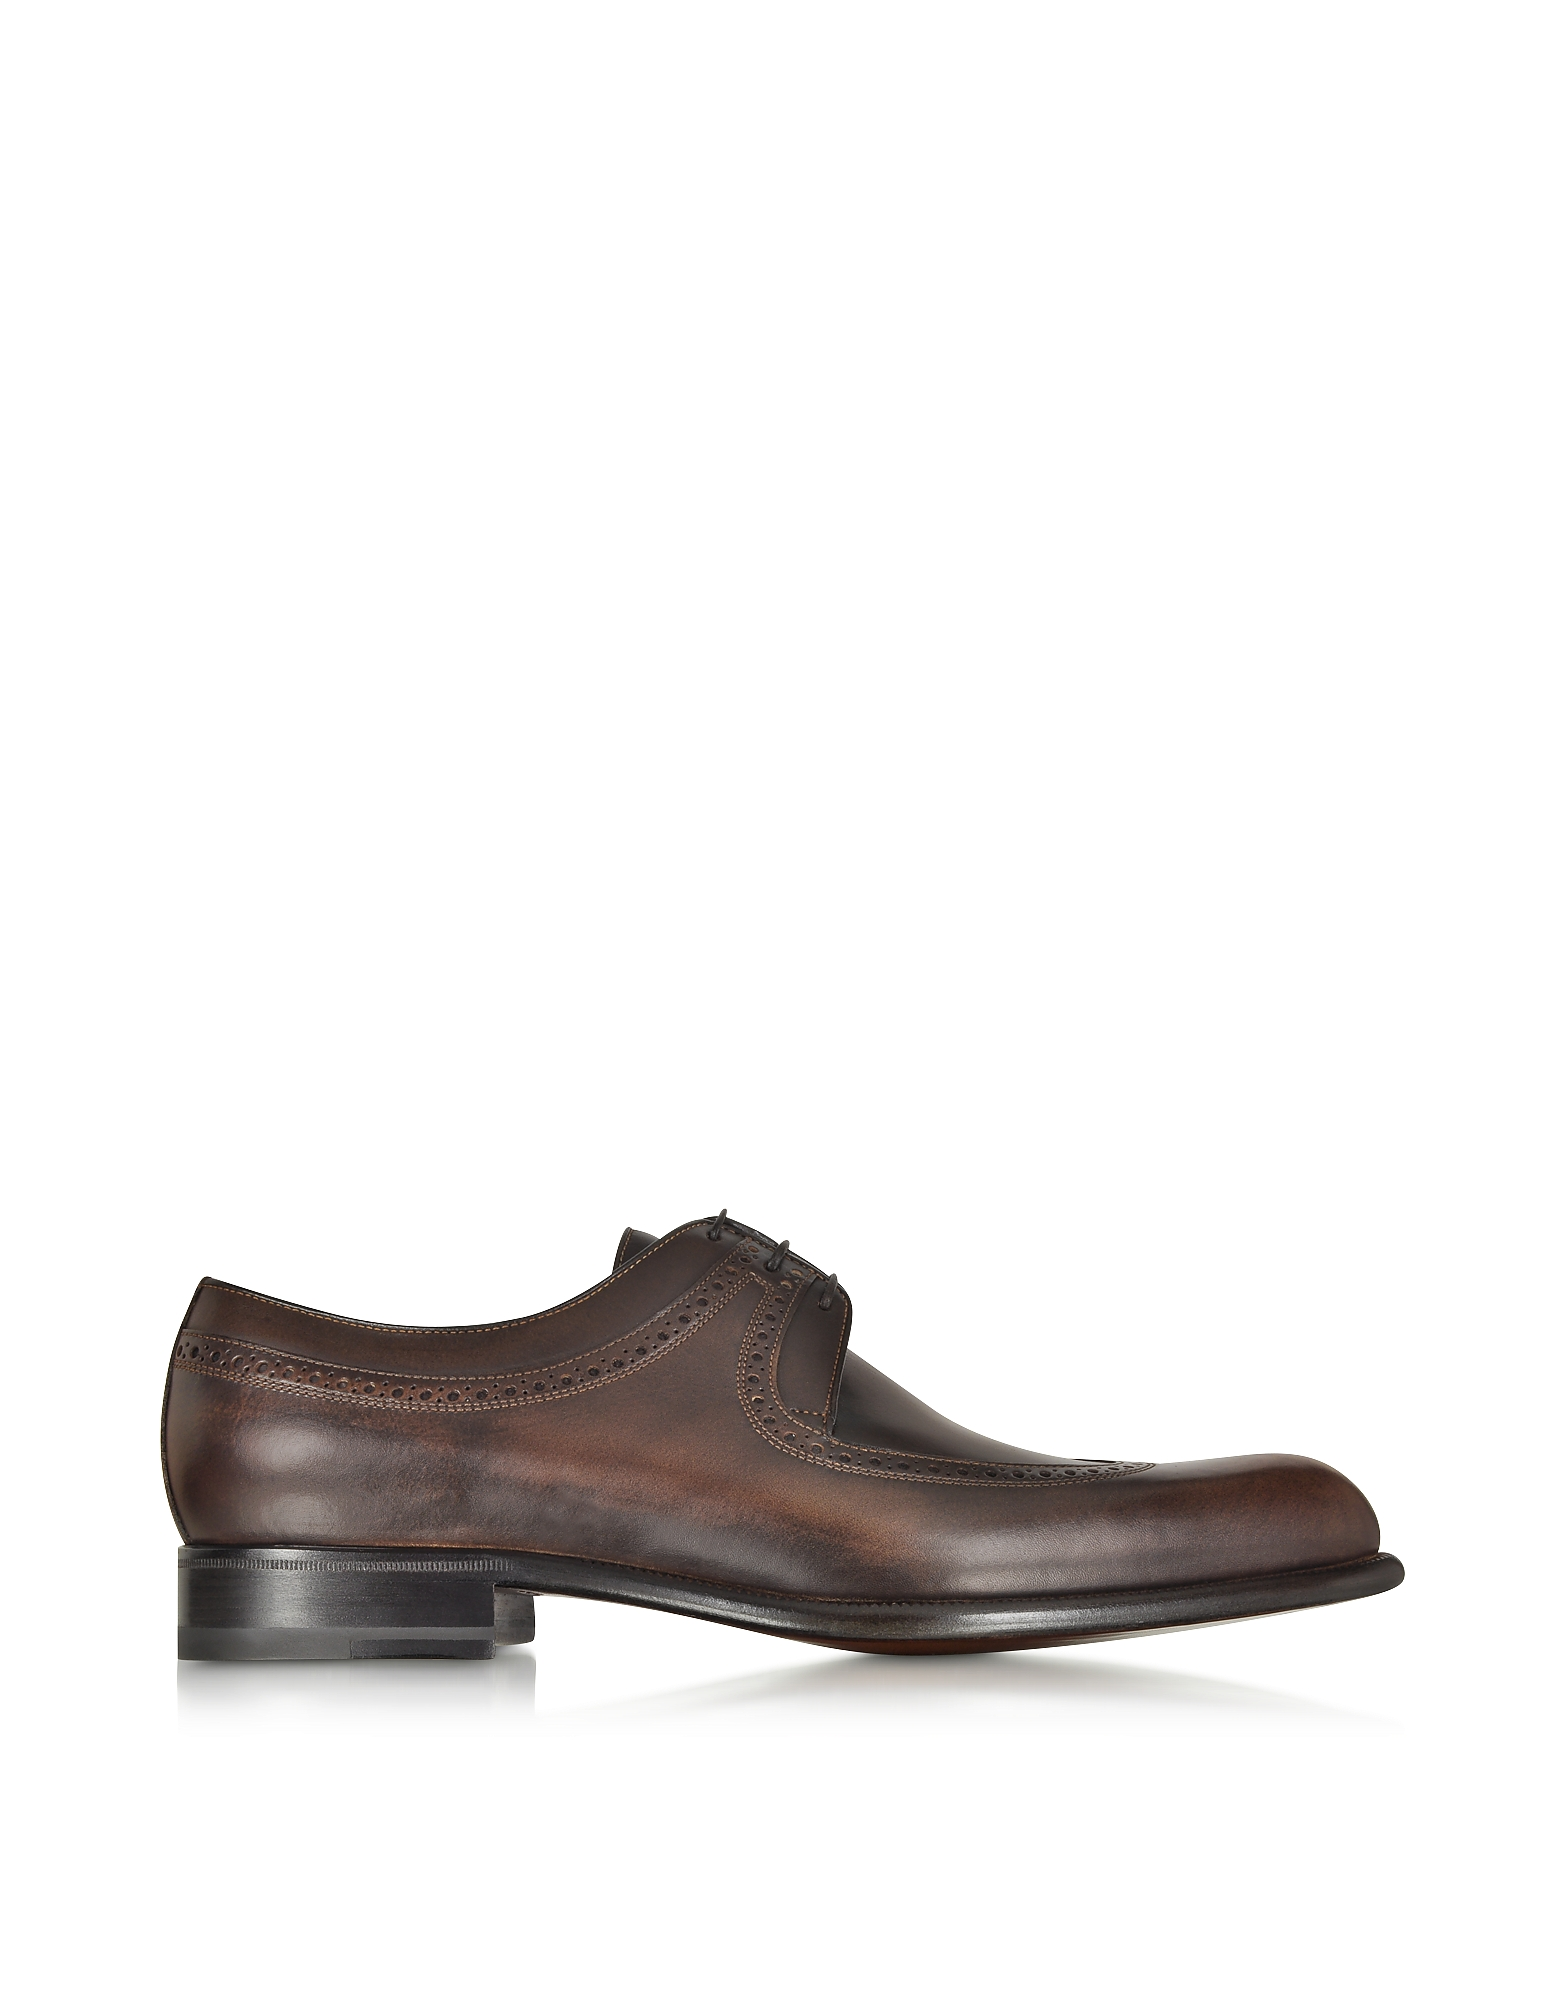 A.Testoni Shoes, Moro Washed Leather Derby Shoe